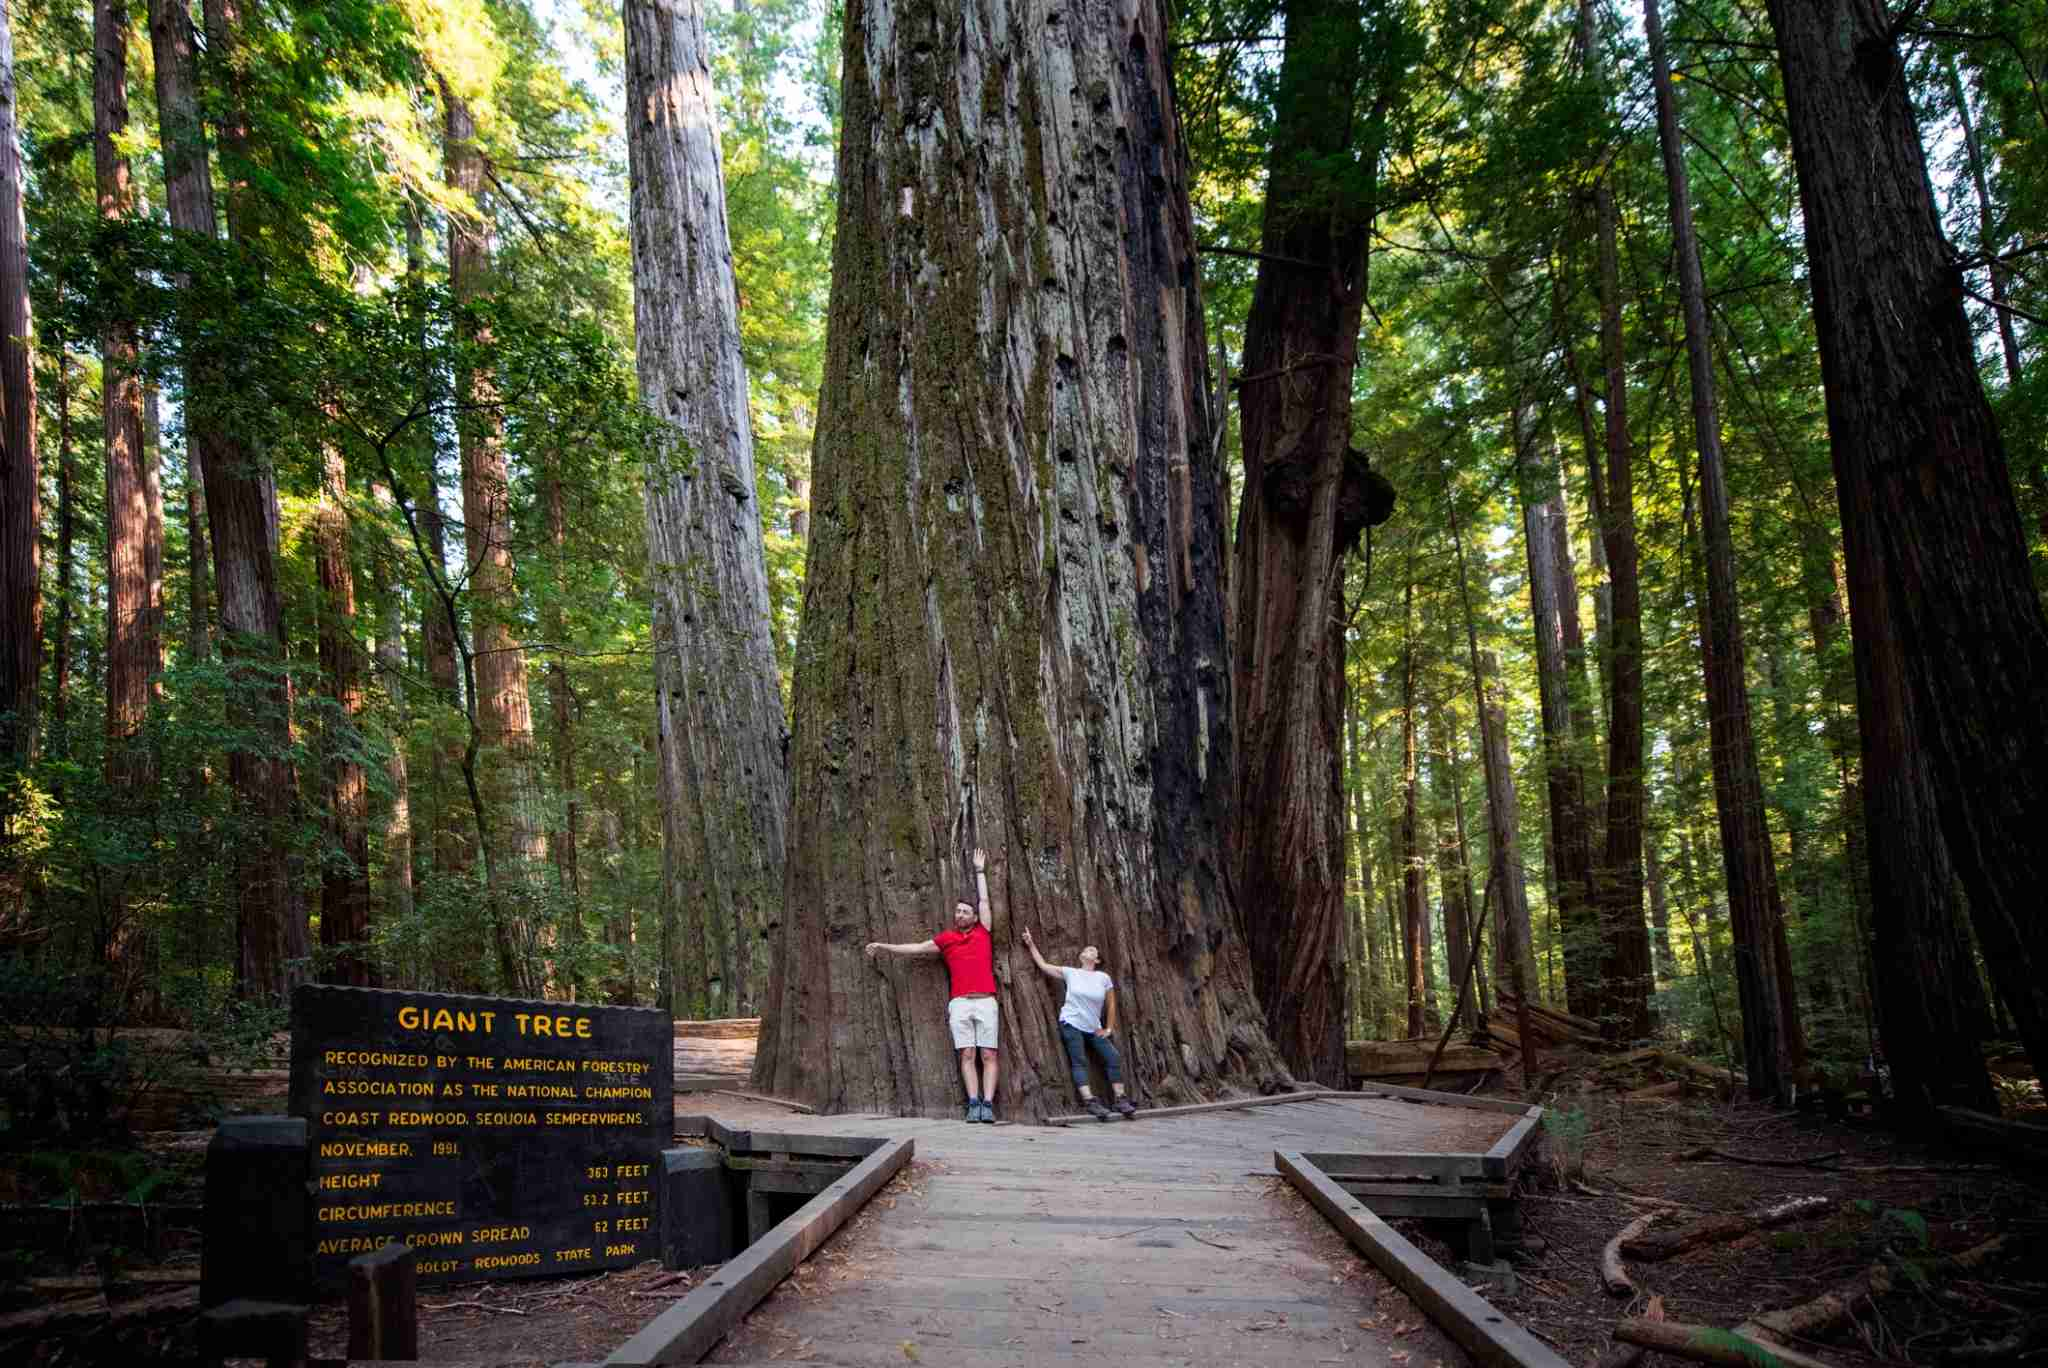 """Tourists in front of """"The Giant Tree"""" in the Redwood National Park, recognized by the American Forestry Association as the National Champion coast Redwood Sequoia Sempervirens. Height 363 Feet, Circumference 53.2 Feet, Average Crown Spread 62 Feet. Humboldt Redwoods State Park. California, USA."""